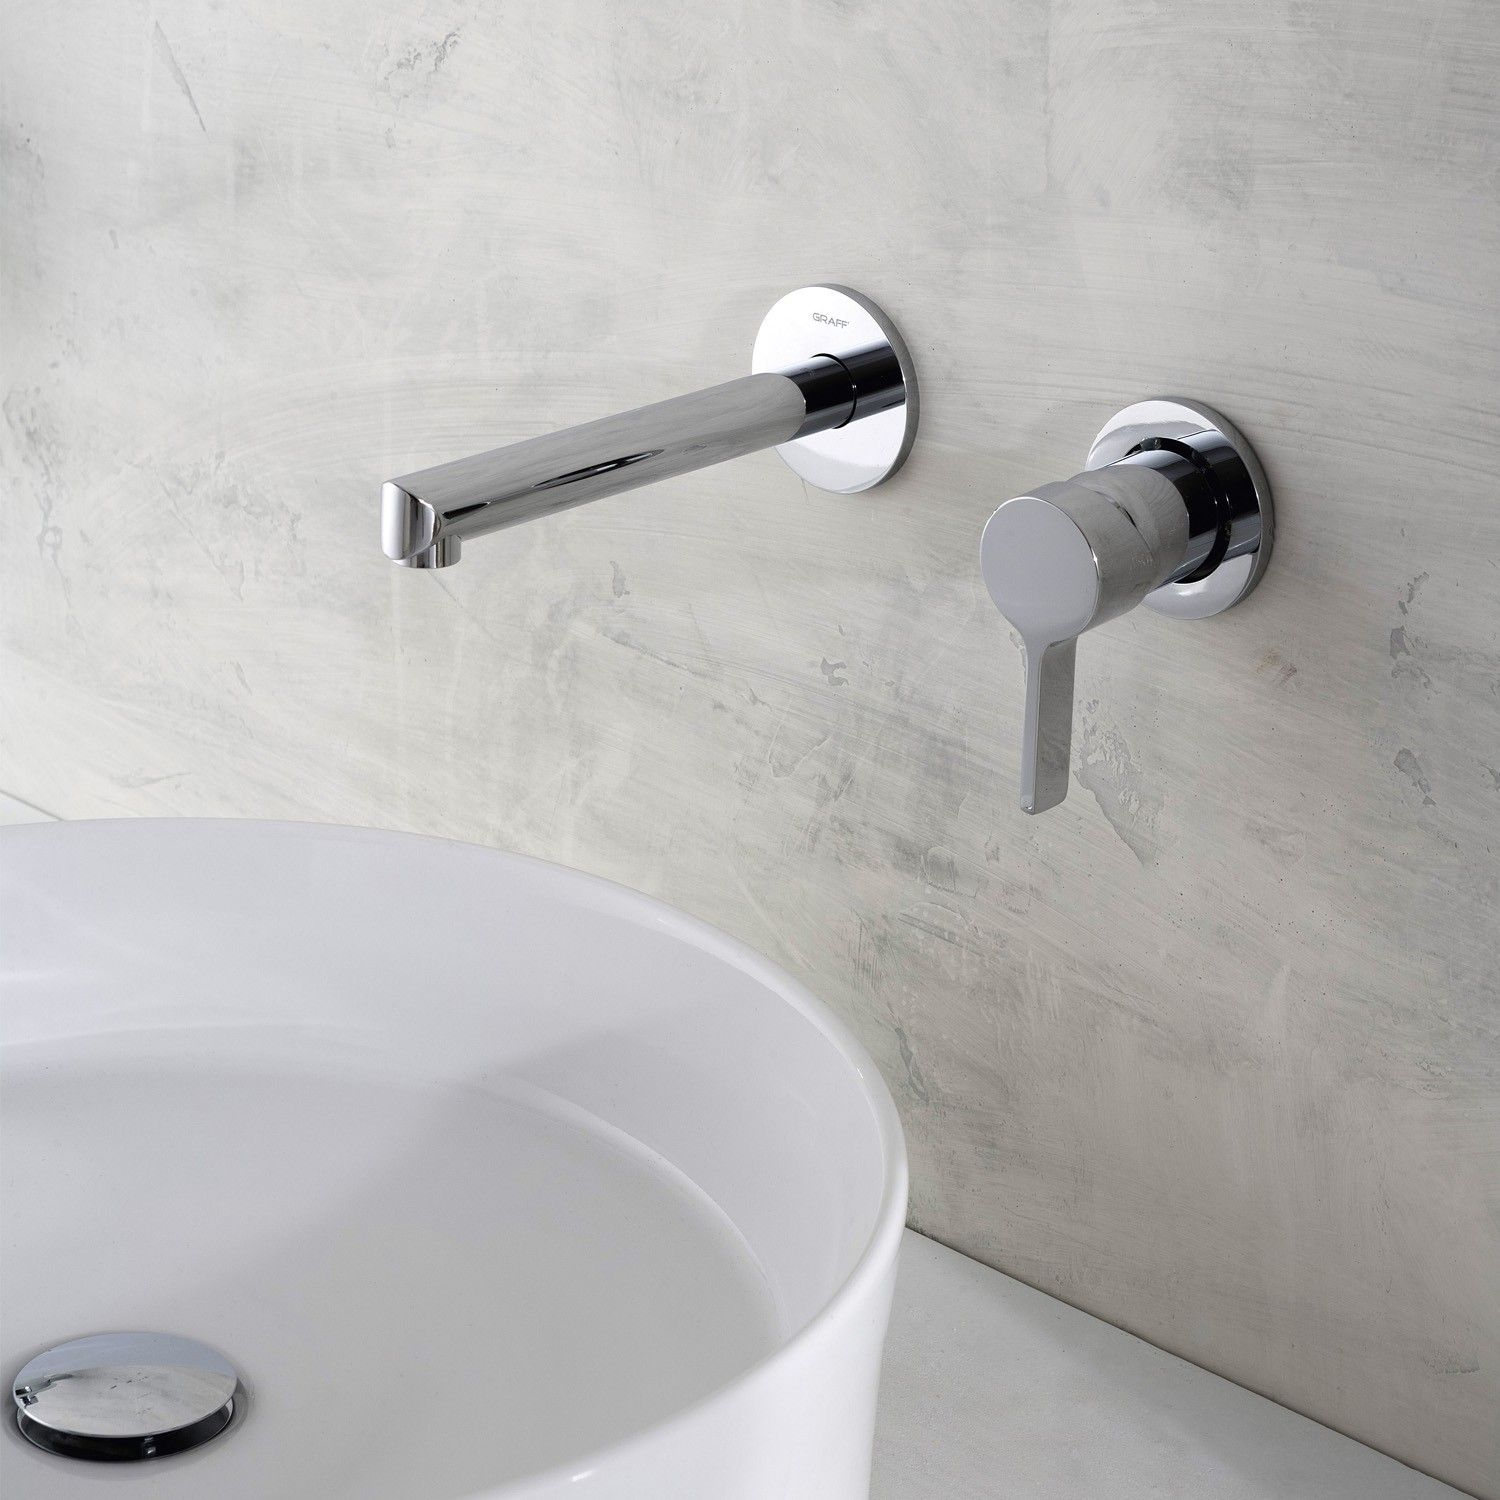 Terra Wall-Mounted Faucet   Wall mount faucet, Faucet and Save water